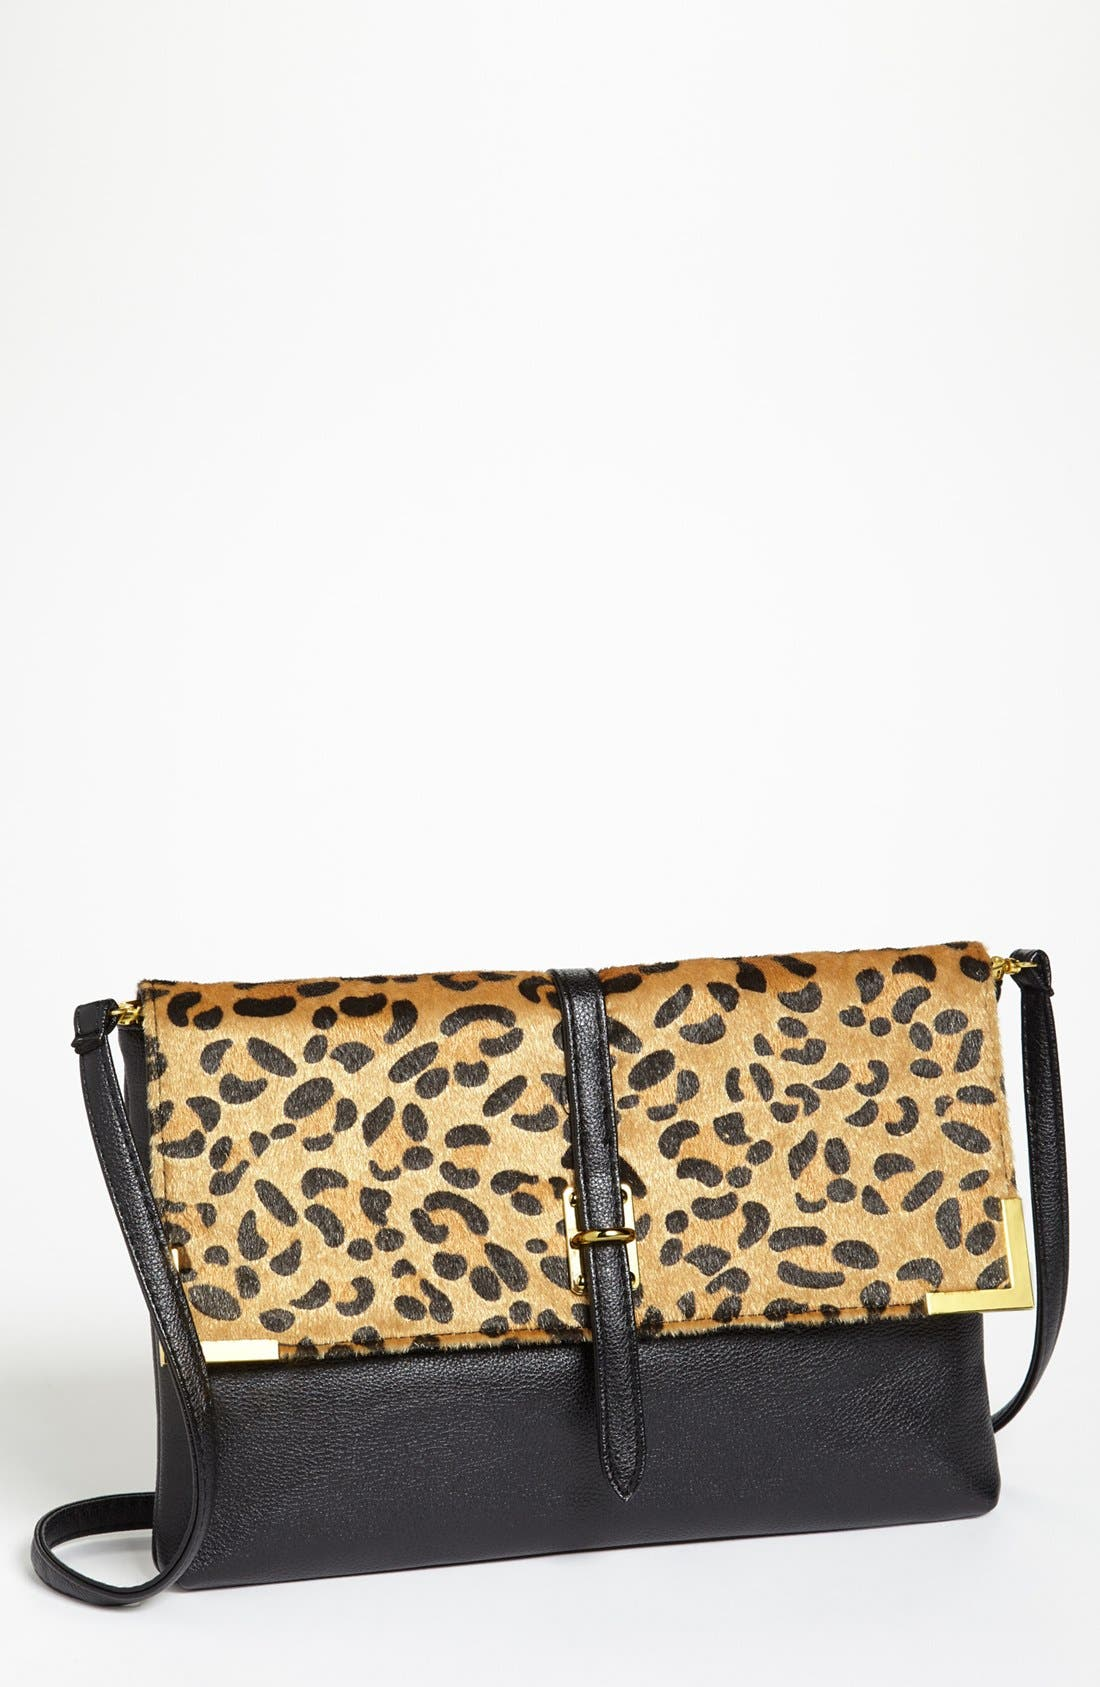 Alternate Image 1 Selected - Natasha Couture Leopard Print Shoulder Bag